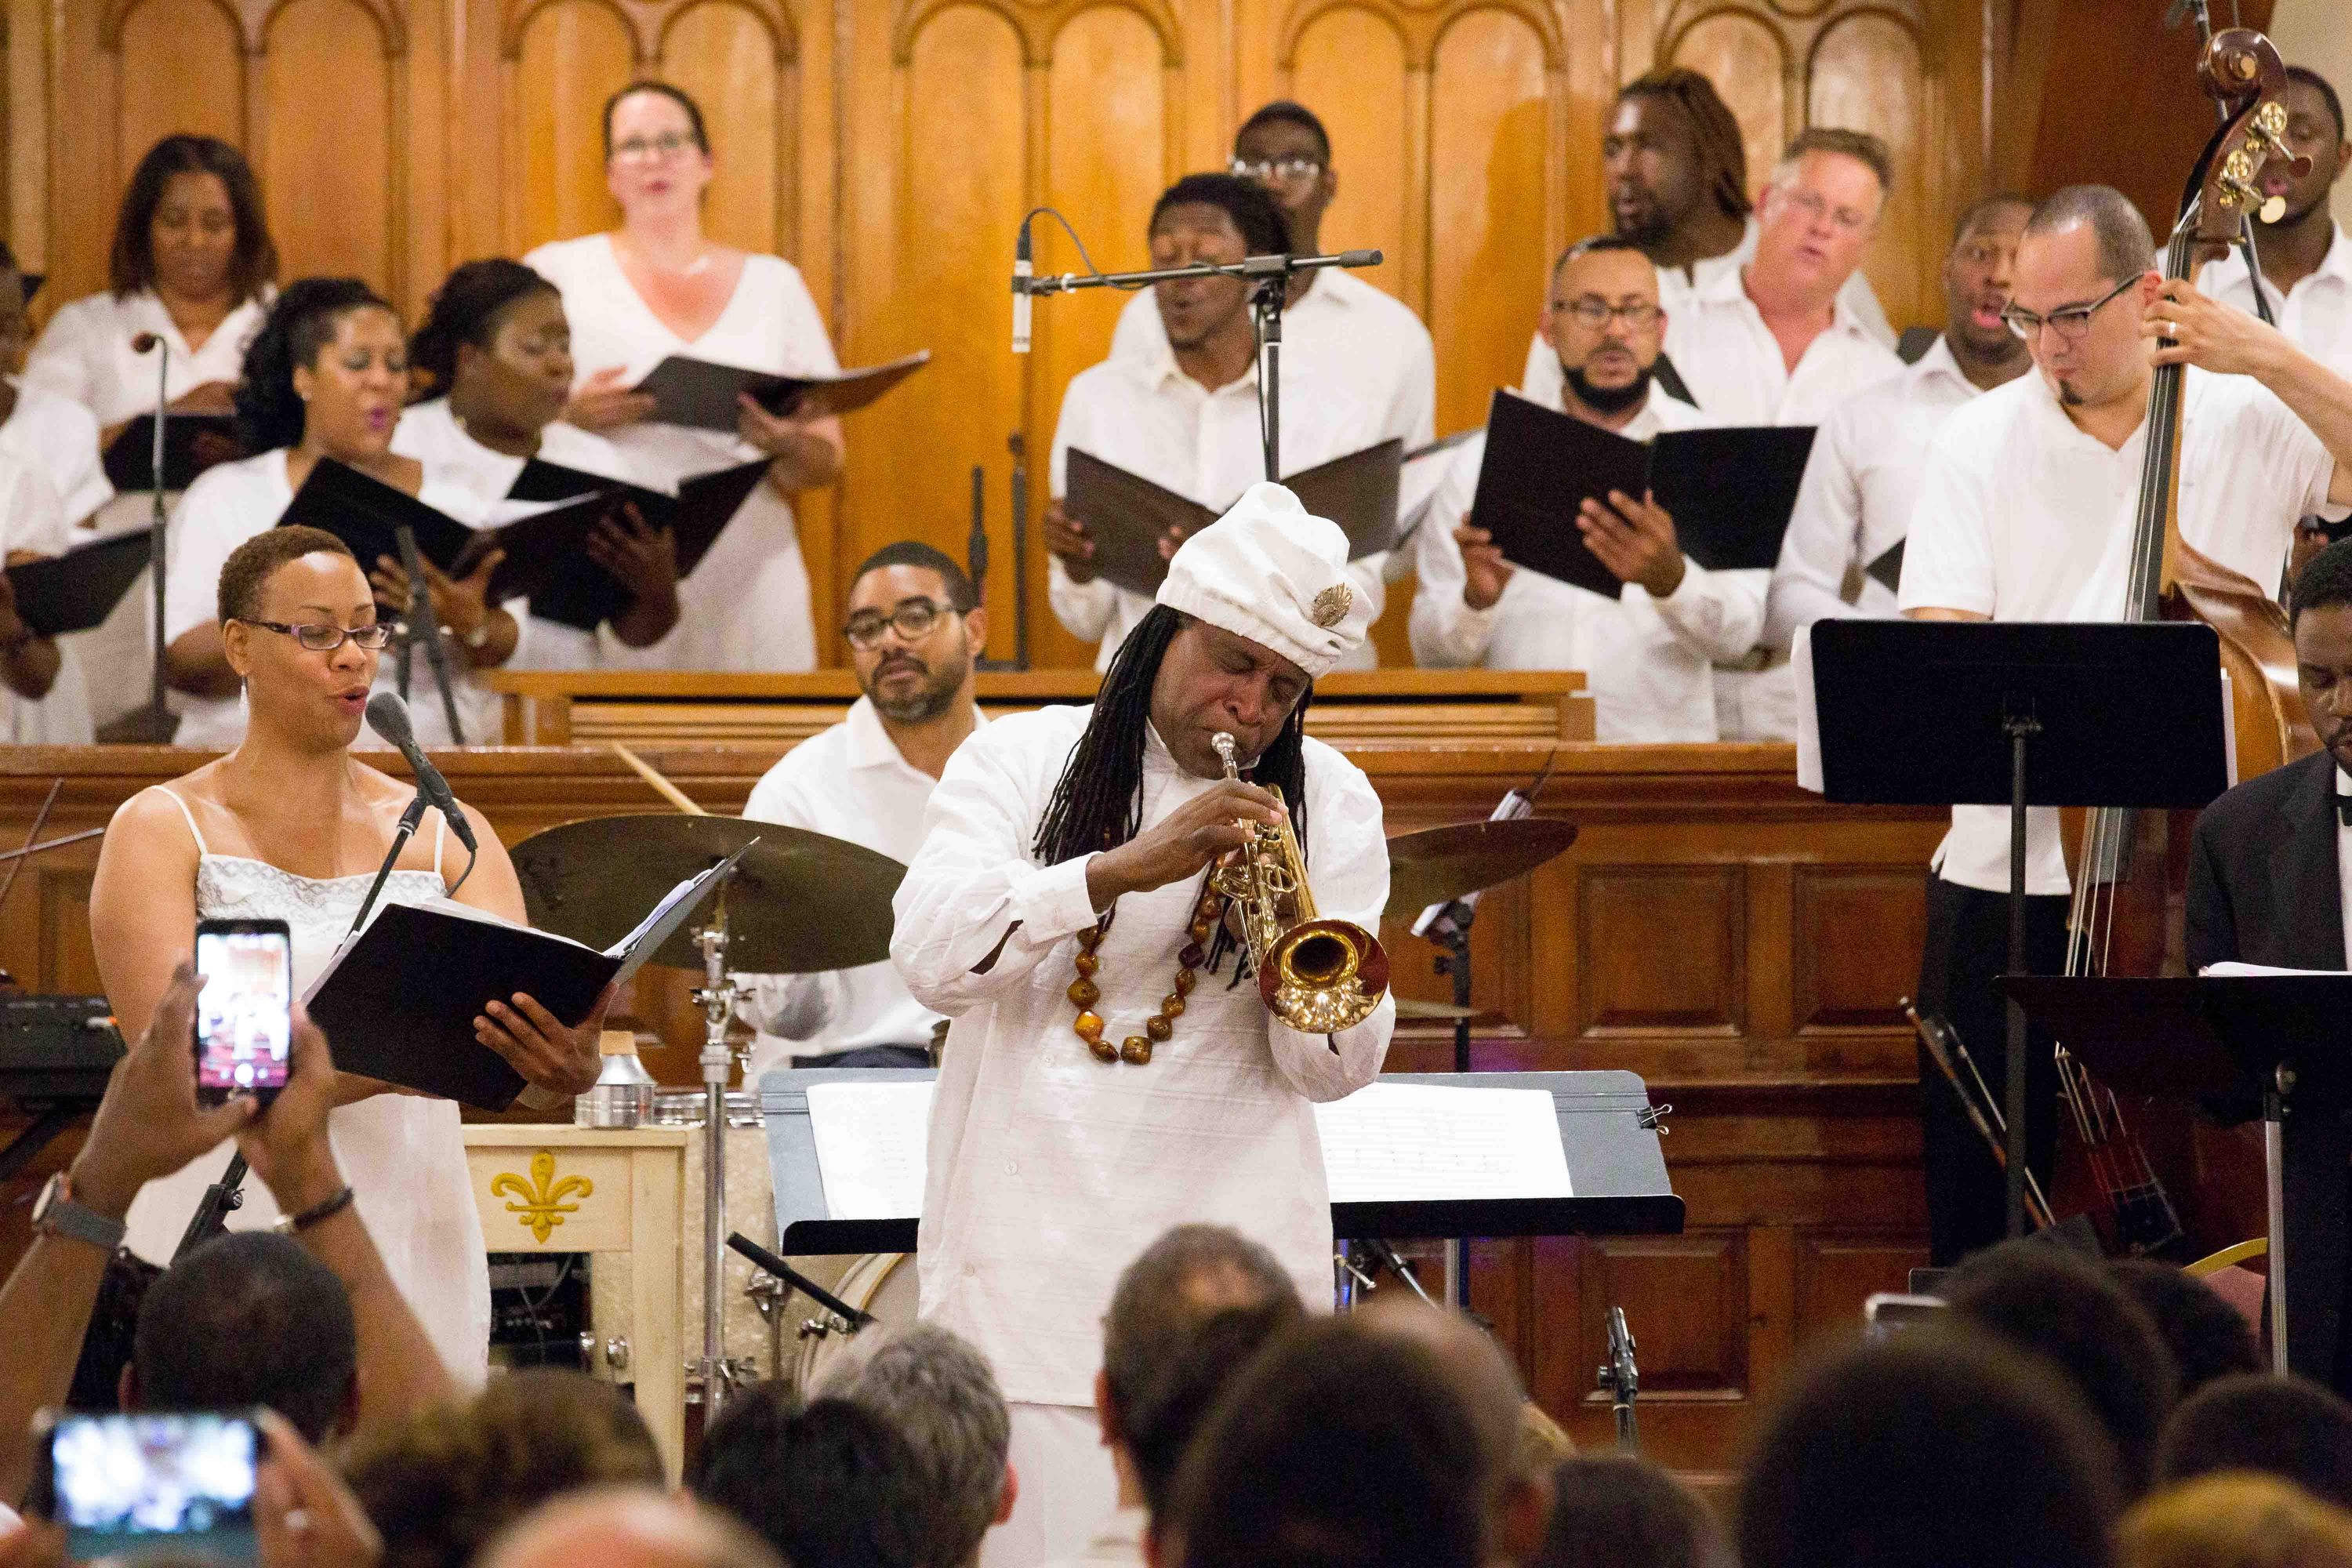 Janice Chandler, Eteme Soprano, left, and Philadelphia Orchestra Music Alive Composer-in-Residence Hannibal Lokumbe, center, perform the world premiere of Crucifixion Resurrection: Nine Souls a Traveling, at the Mother Bethel African Methodist Epicopal Church, Saturday, June 17, 2017.